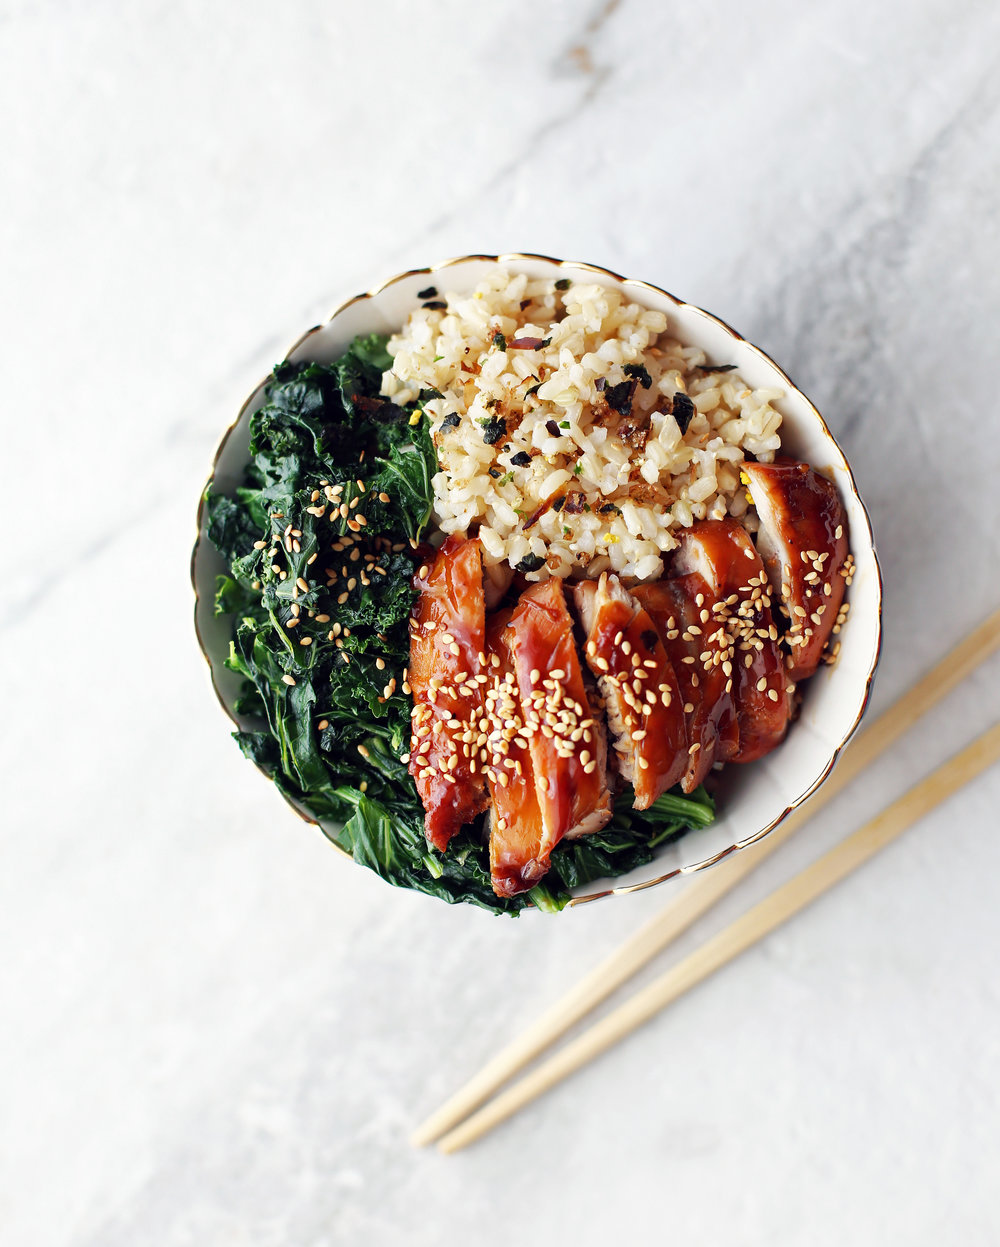 Overhead view of a bowl of sliced teriyaki chicken, sautéed kale, and brown rice topped with furikake.